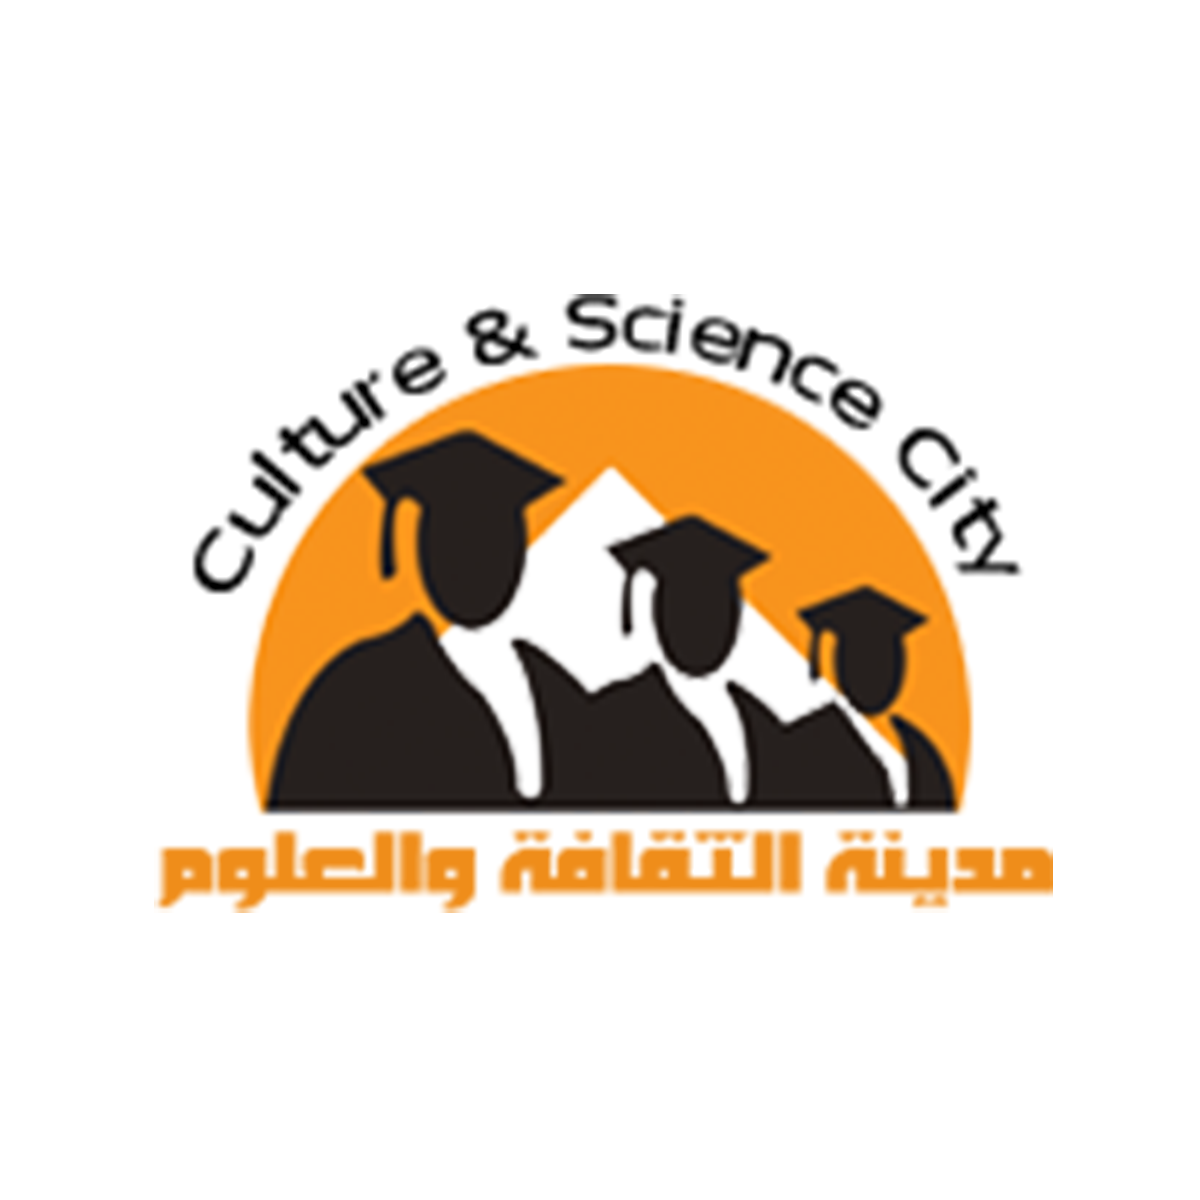 Higher Institute of Managerial Sciences - 6th of October